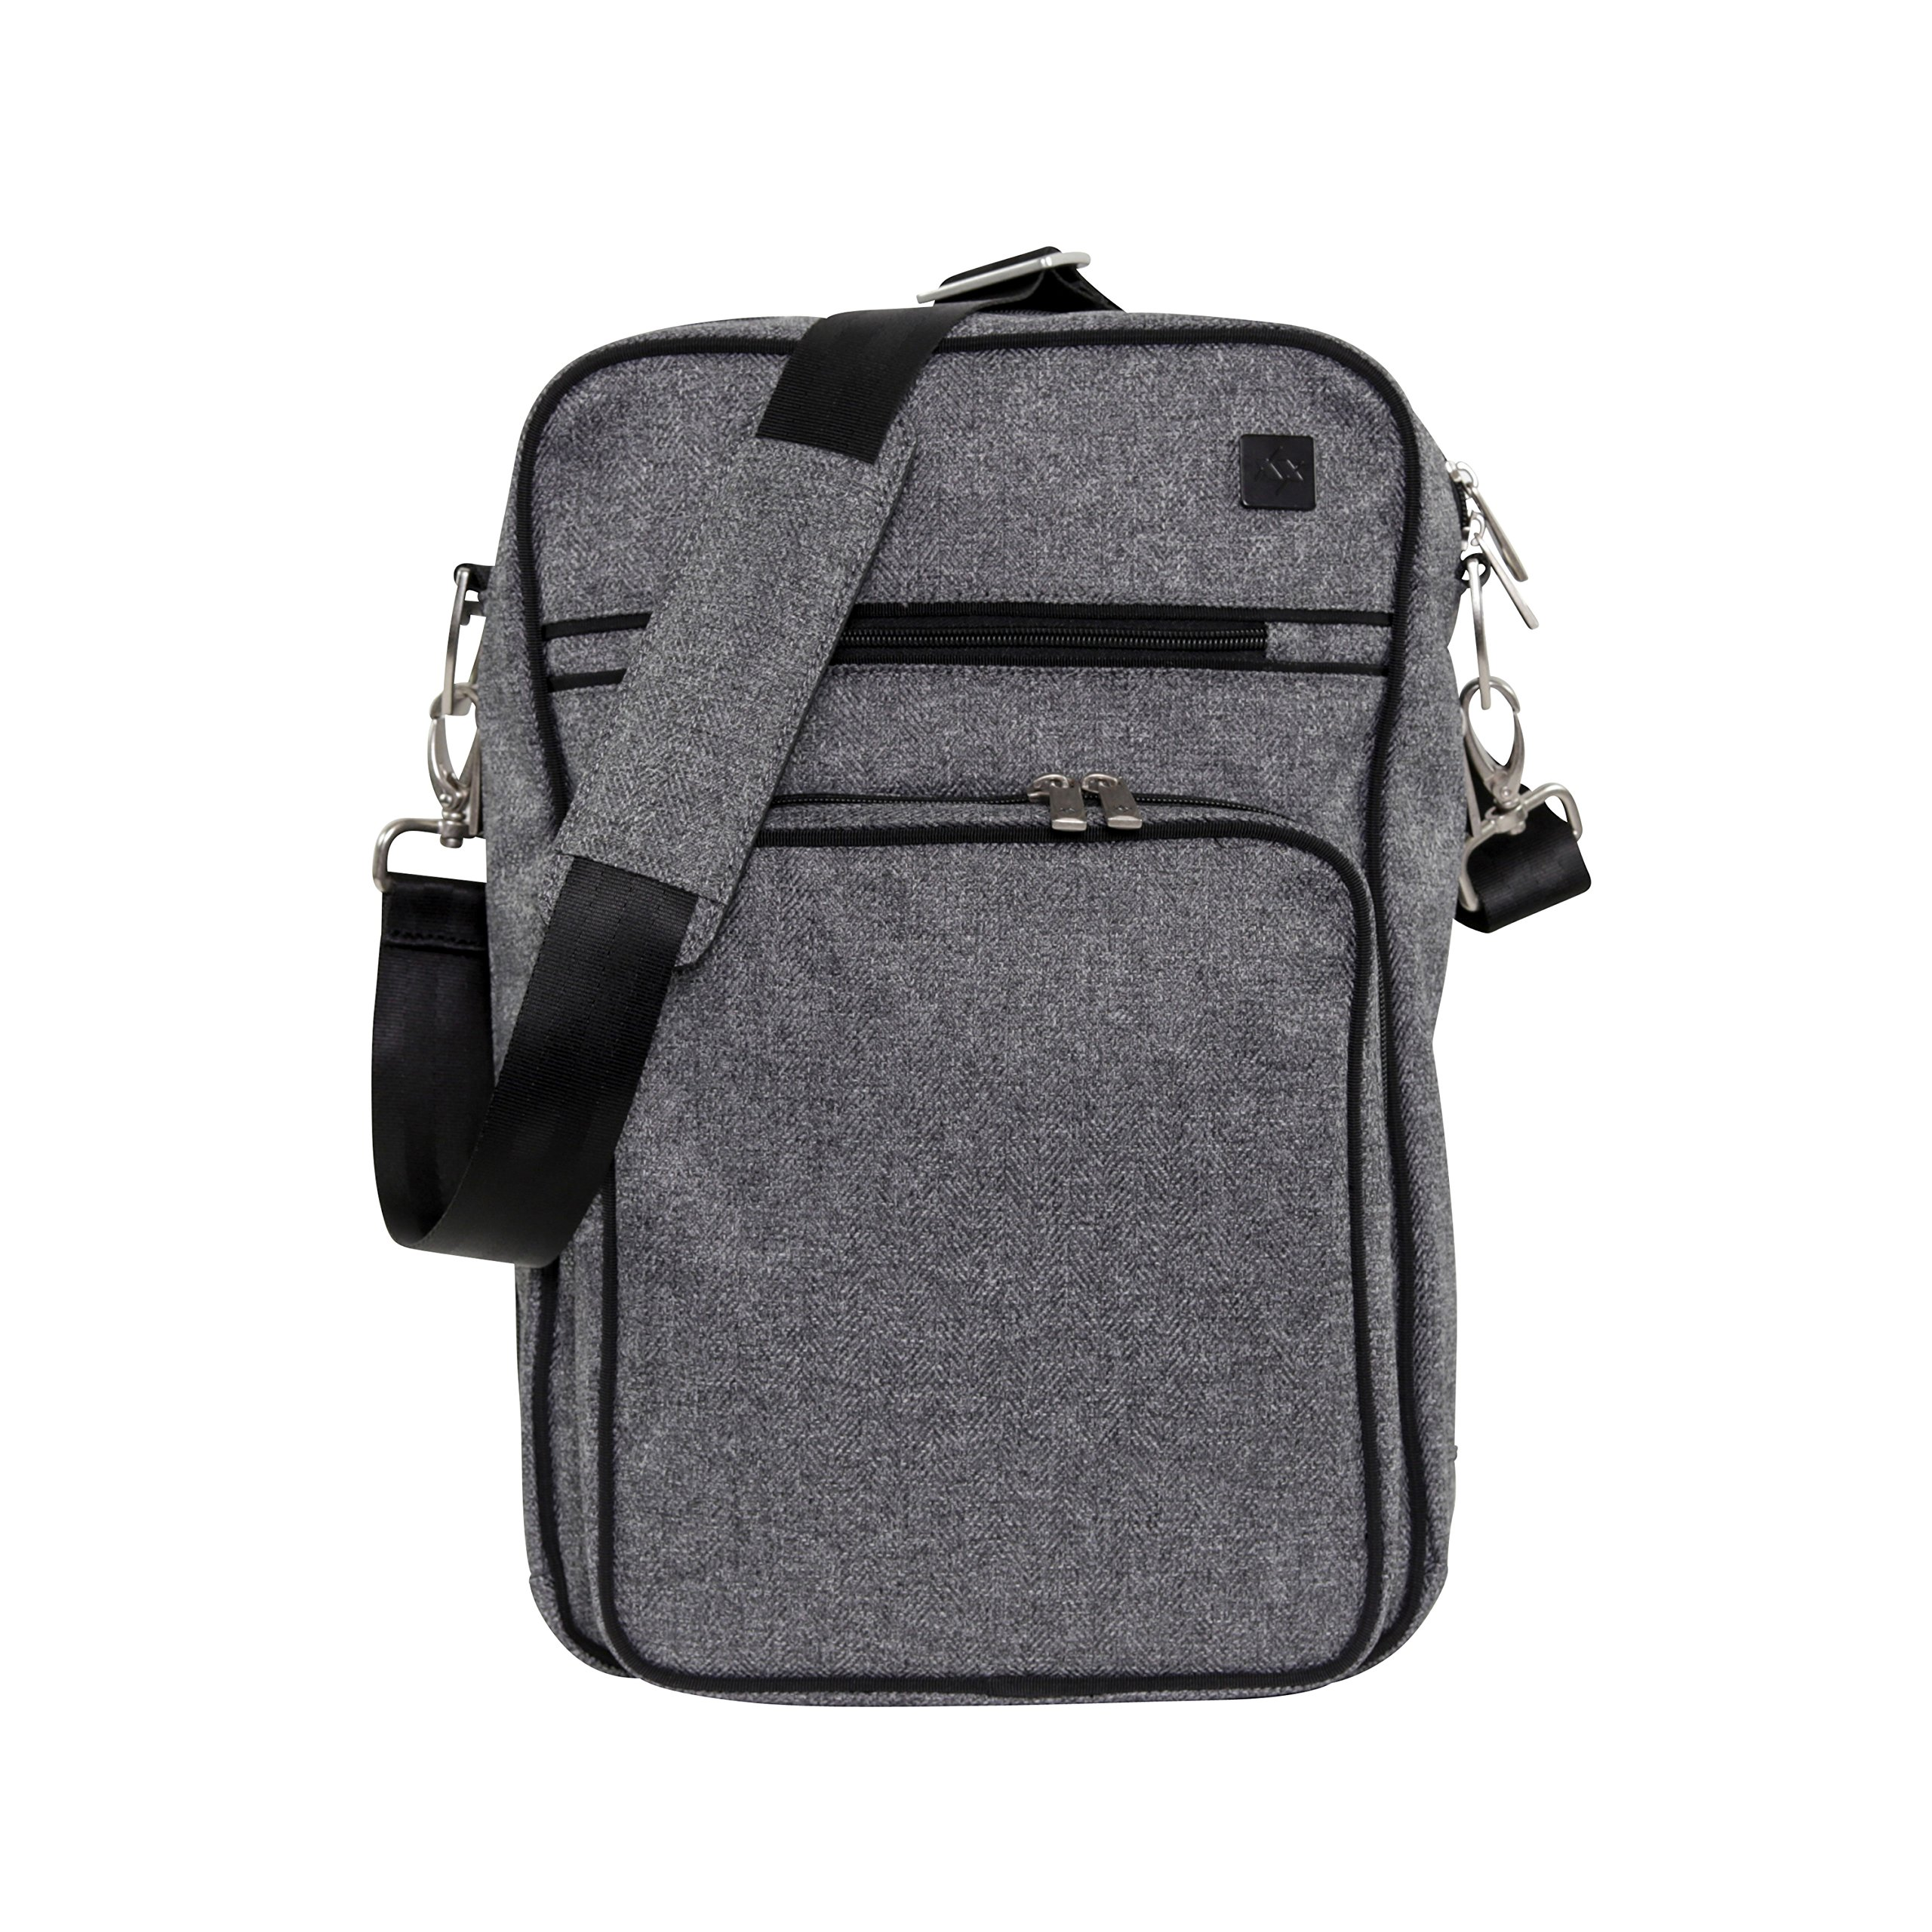 JuJuBe Helix Multi-Functional Crossbody Messenger/Diaper Dad Bag, XY Collection - Gray Matter